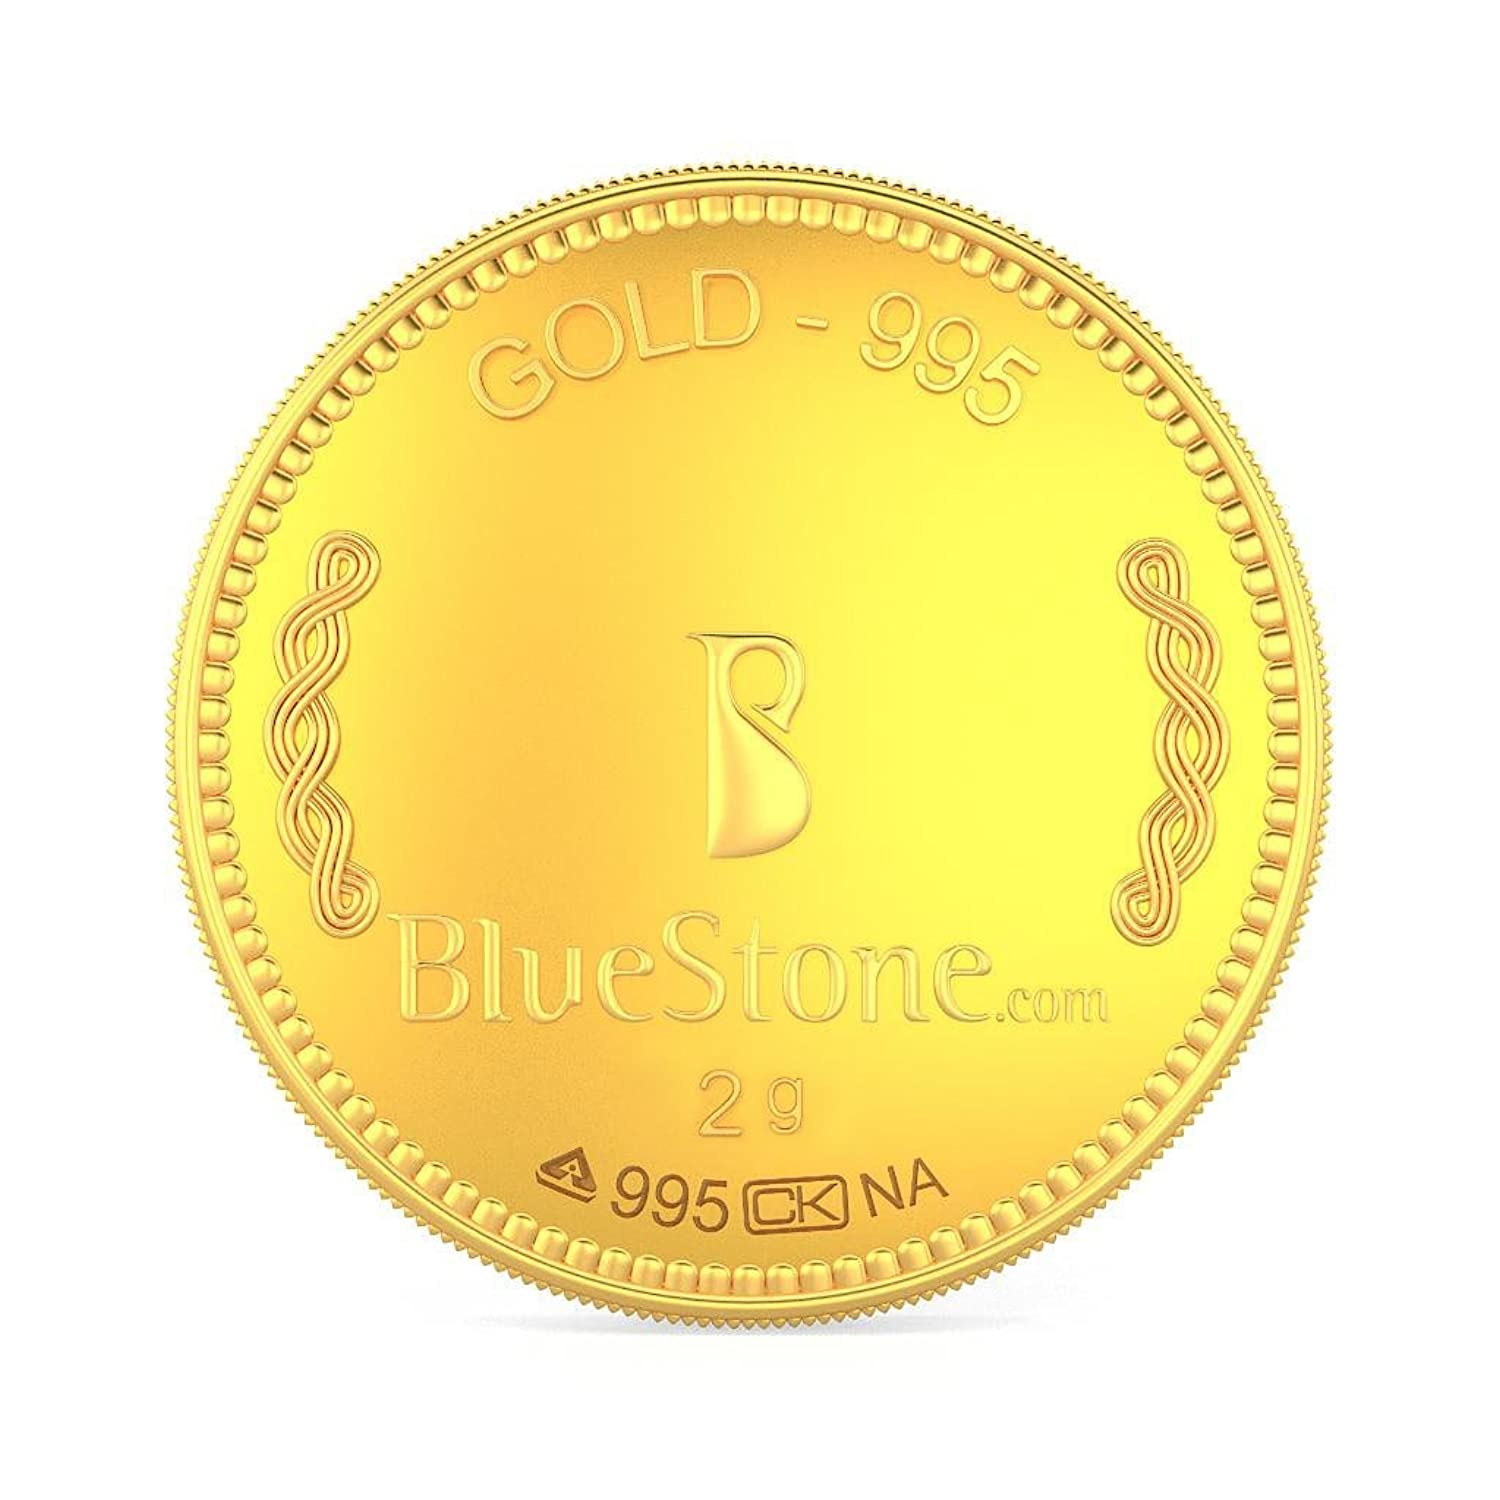 BlueStone 24 (995) K 2 g Gold Coin